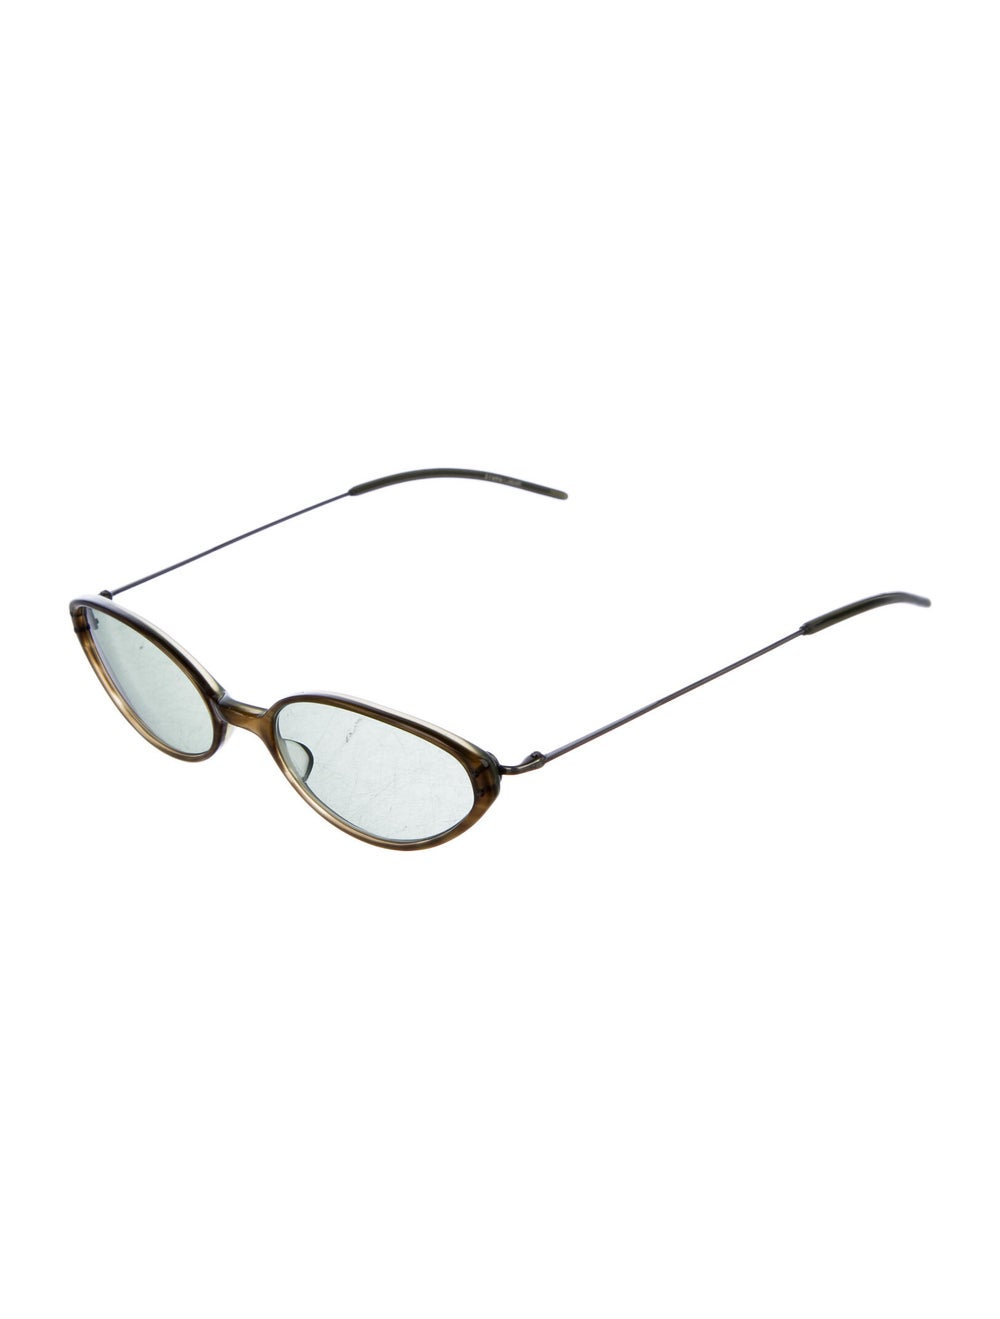 Oliver Peoples Cat-Eye Tinted Sunglasses Green - image 2